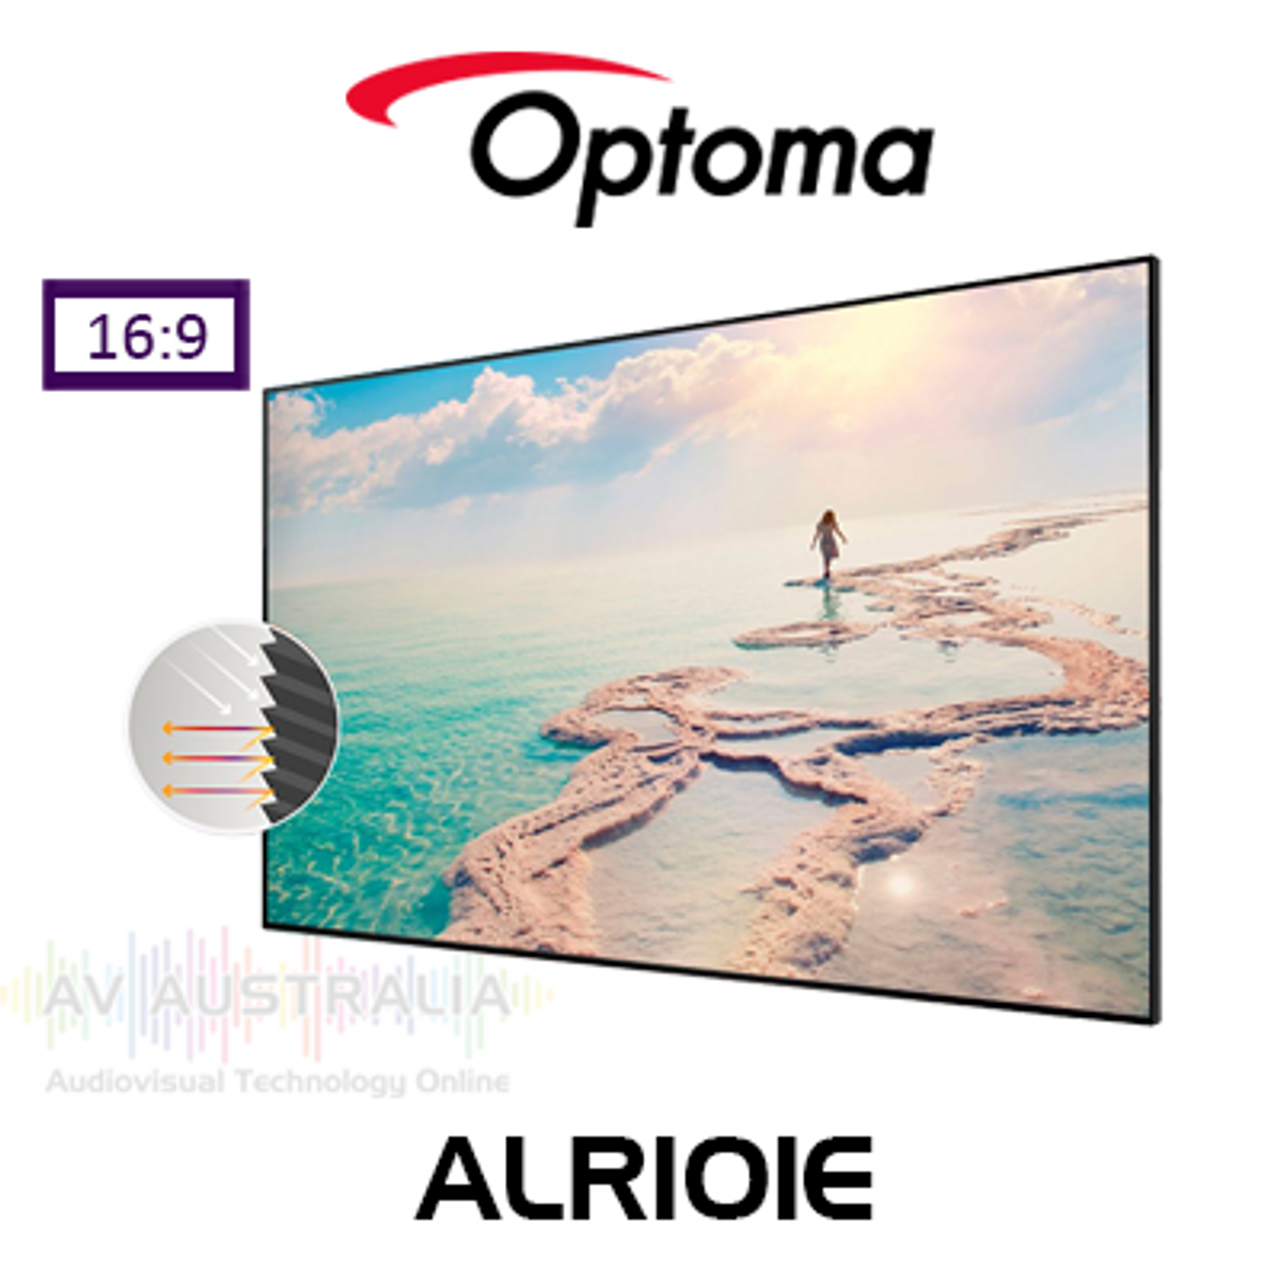 "Optoma ALR101E 100"" Ambient Light Rejection Screen for PRO UST Projector"